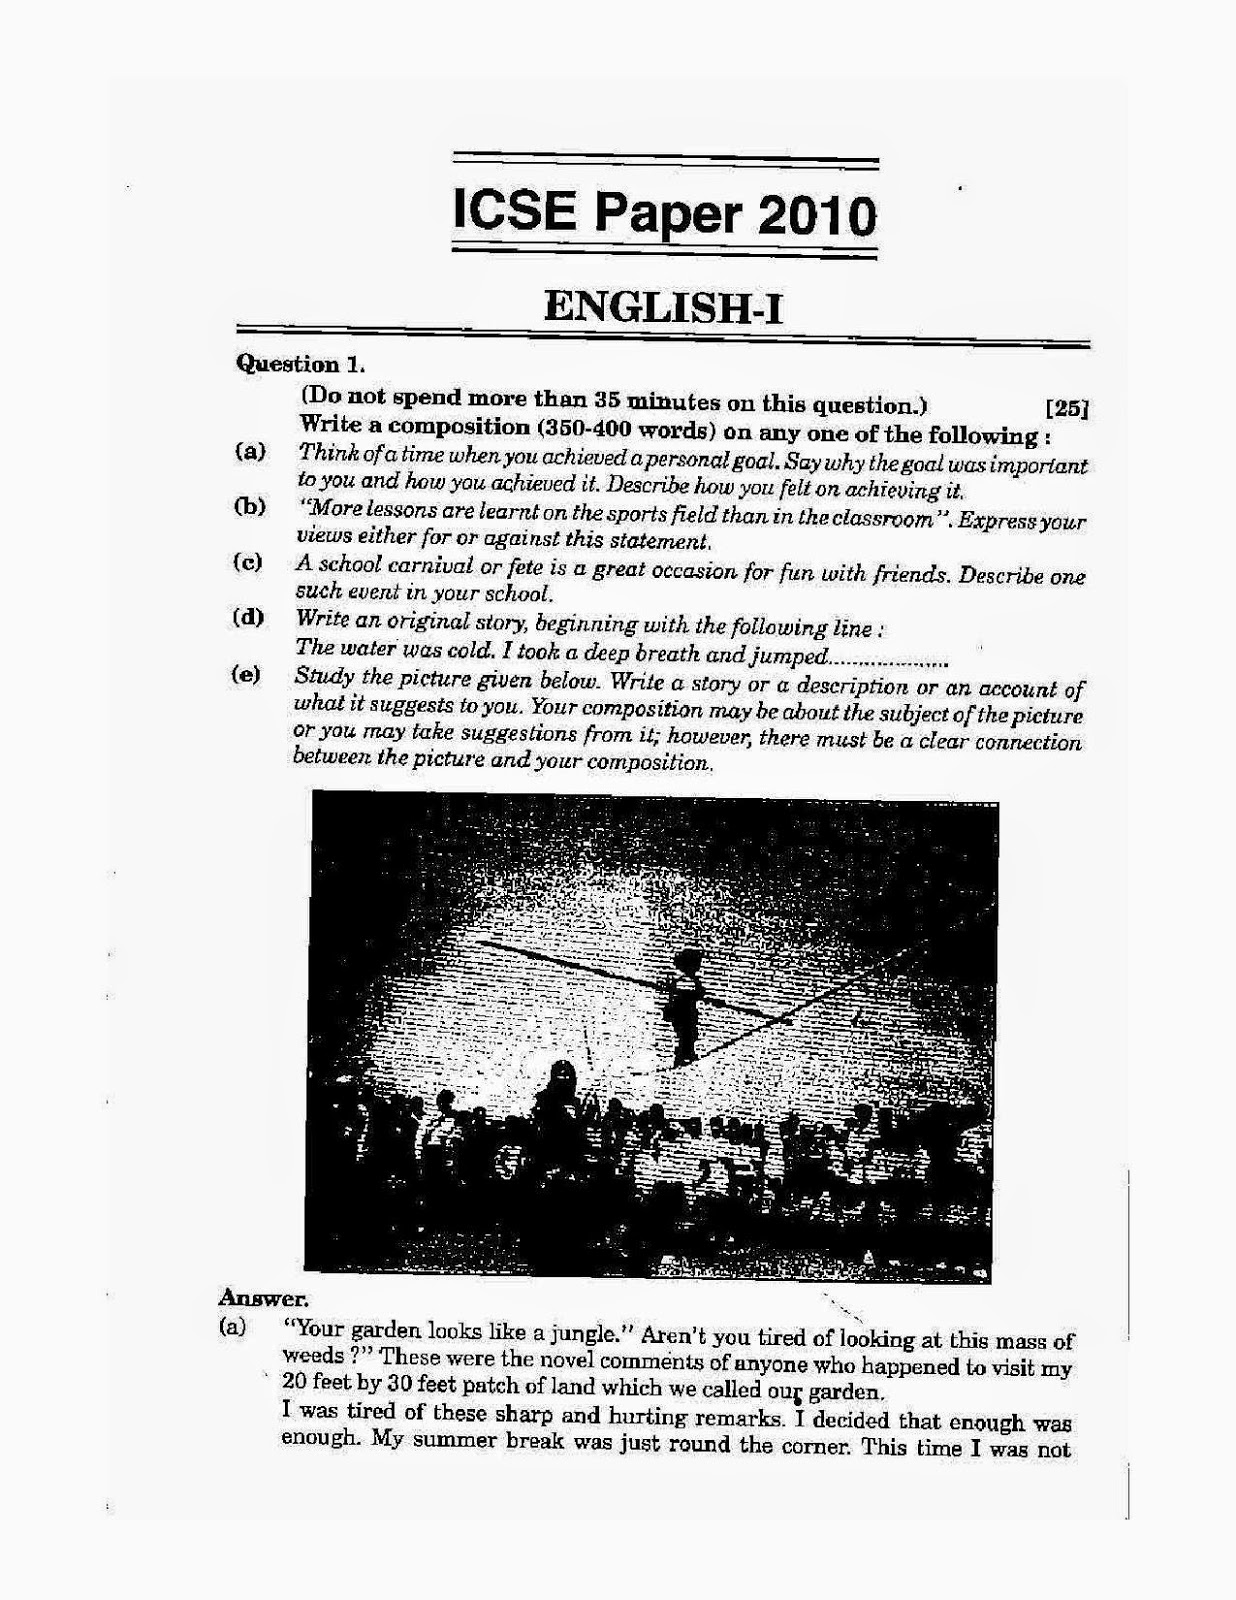 Icse class 10th 2010 English Language solved question paper 2010